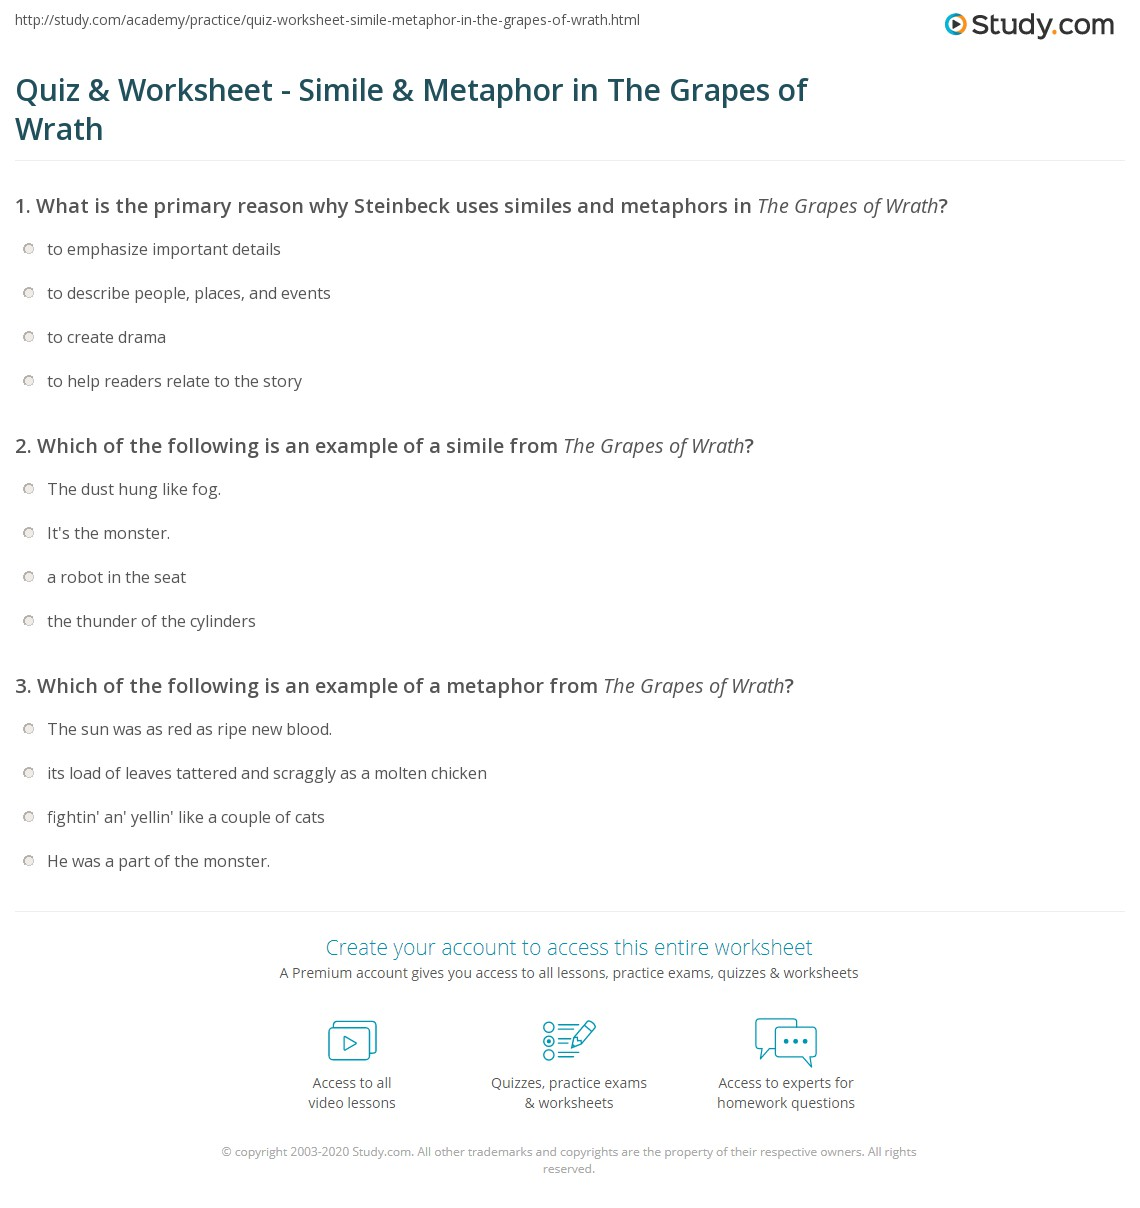 Quiz Worksheet Simile Metaphor in The Grapes of Wrath – Metaphor Simile Worksheet